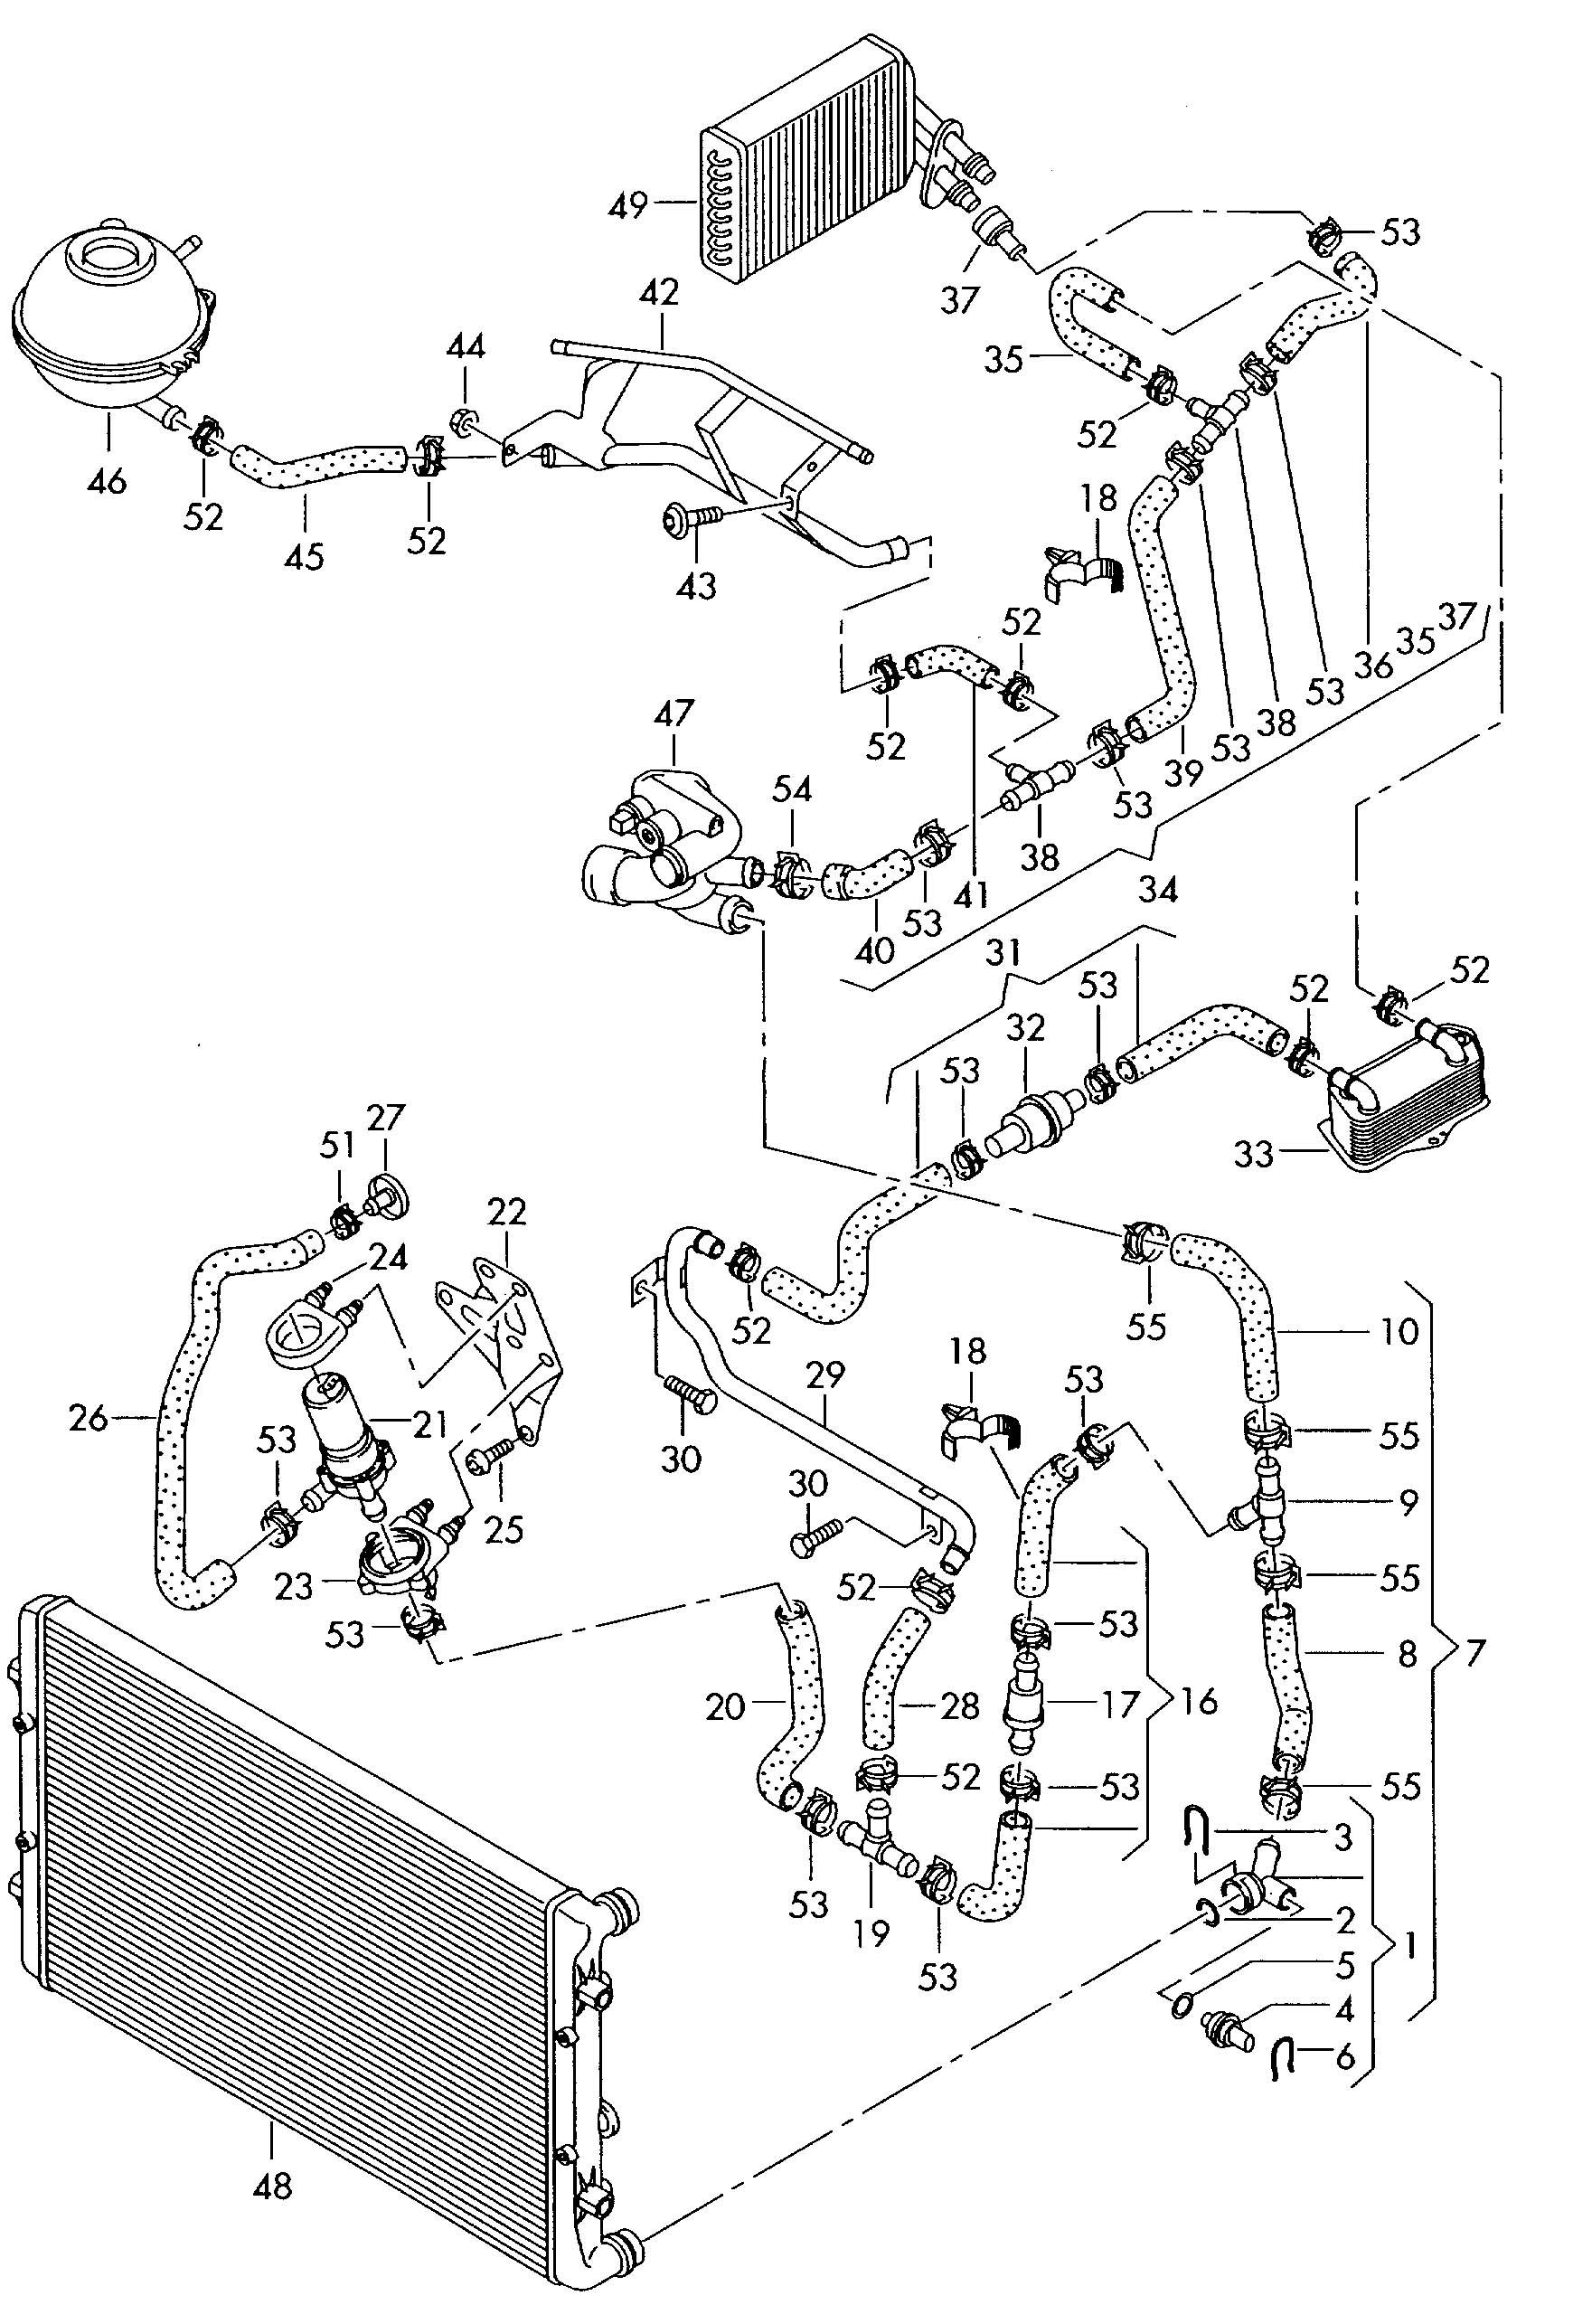 F B D E C E B Ab D on 2000 Audi Tt Cooling Diagram